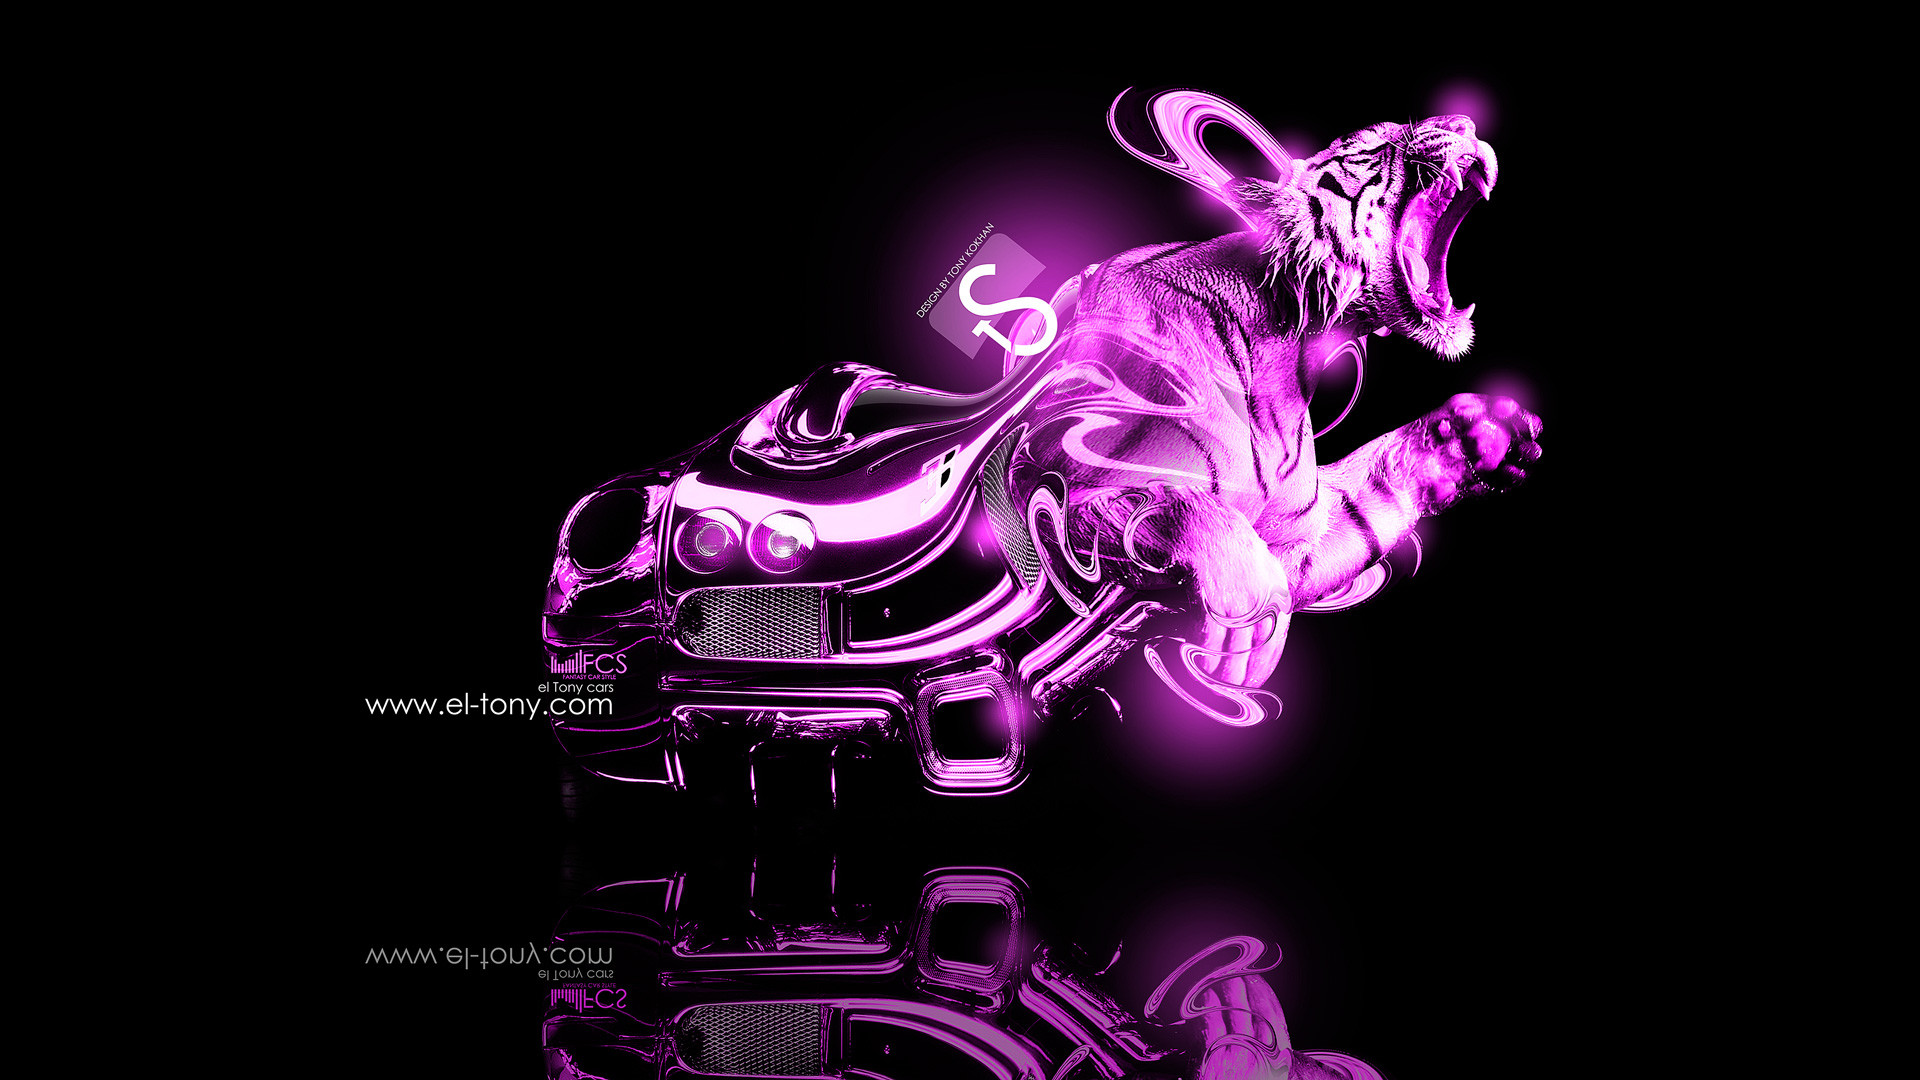 1920x1080 Myxer - Wallpaper - pink tiger - Polyvore